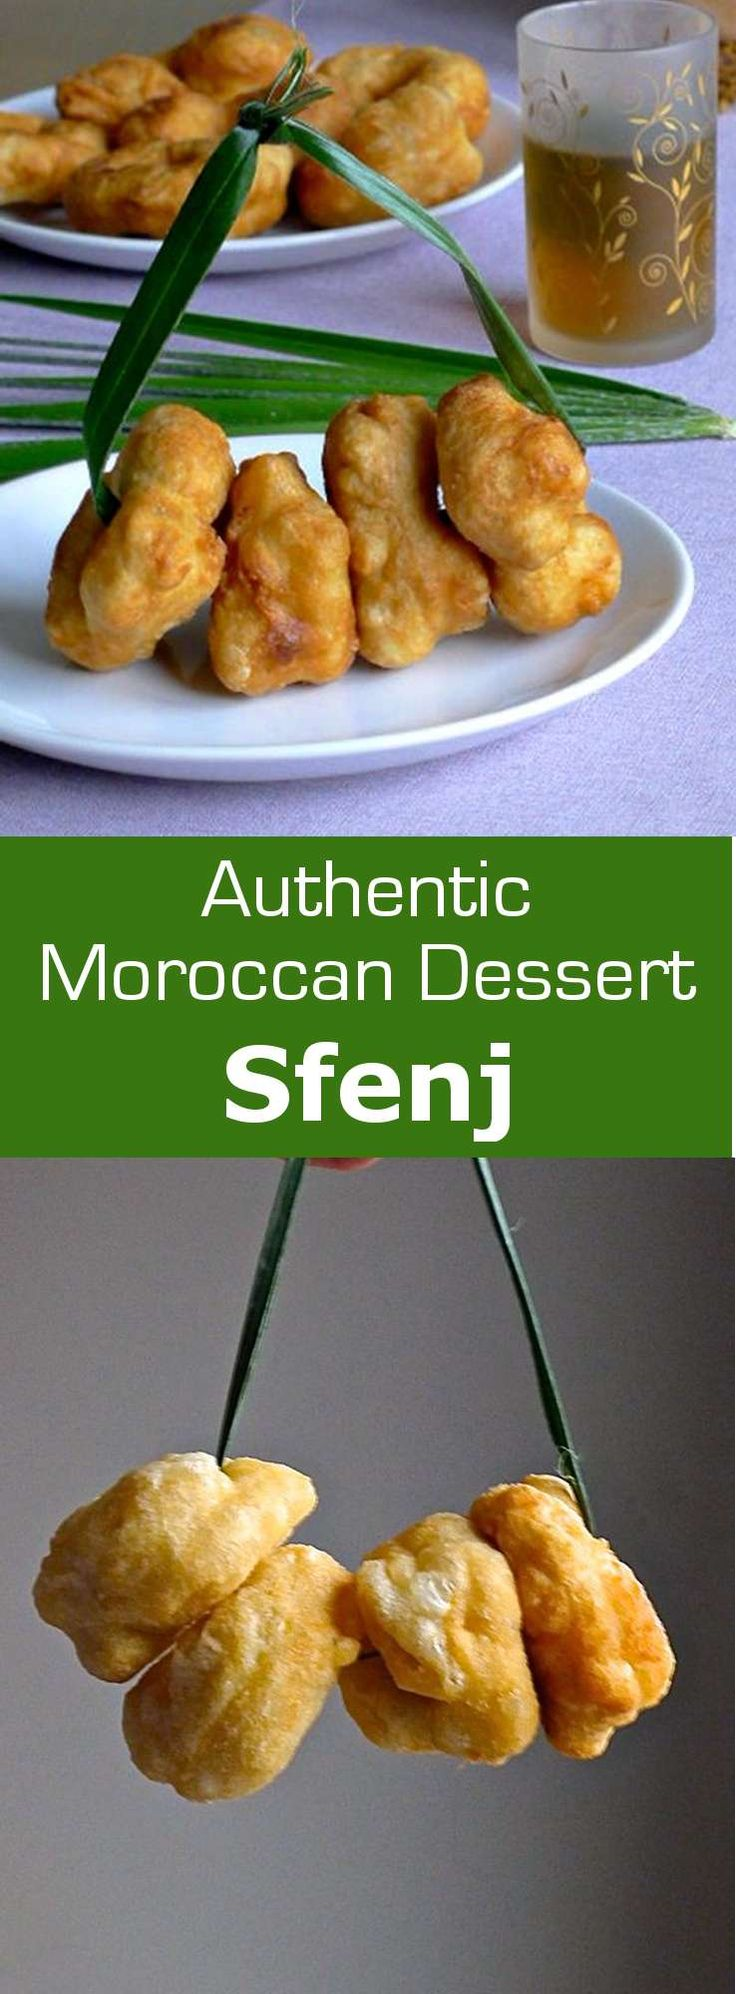 Sfenj are delicious traditional Moroccan beignets which are airy and soft on the inside and crisp on the outside. #dessert #morocco #196flavors